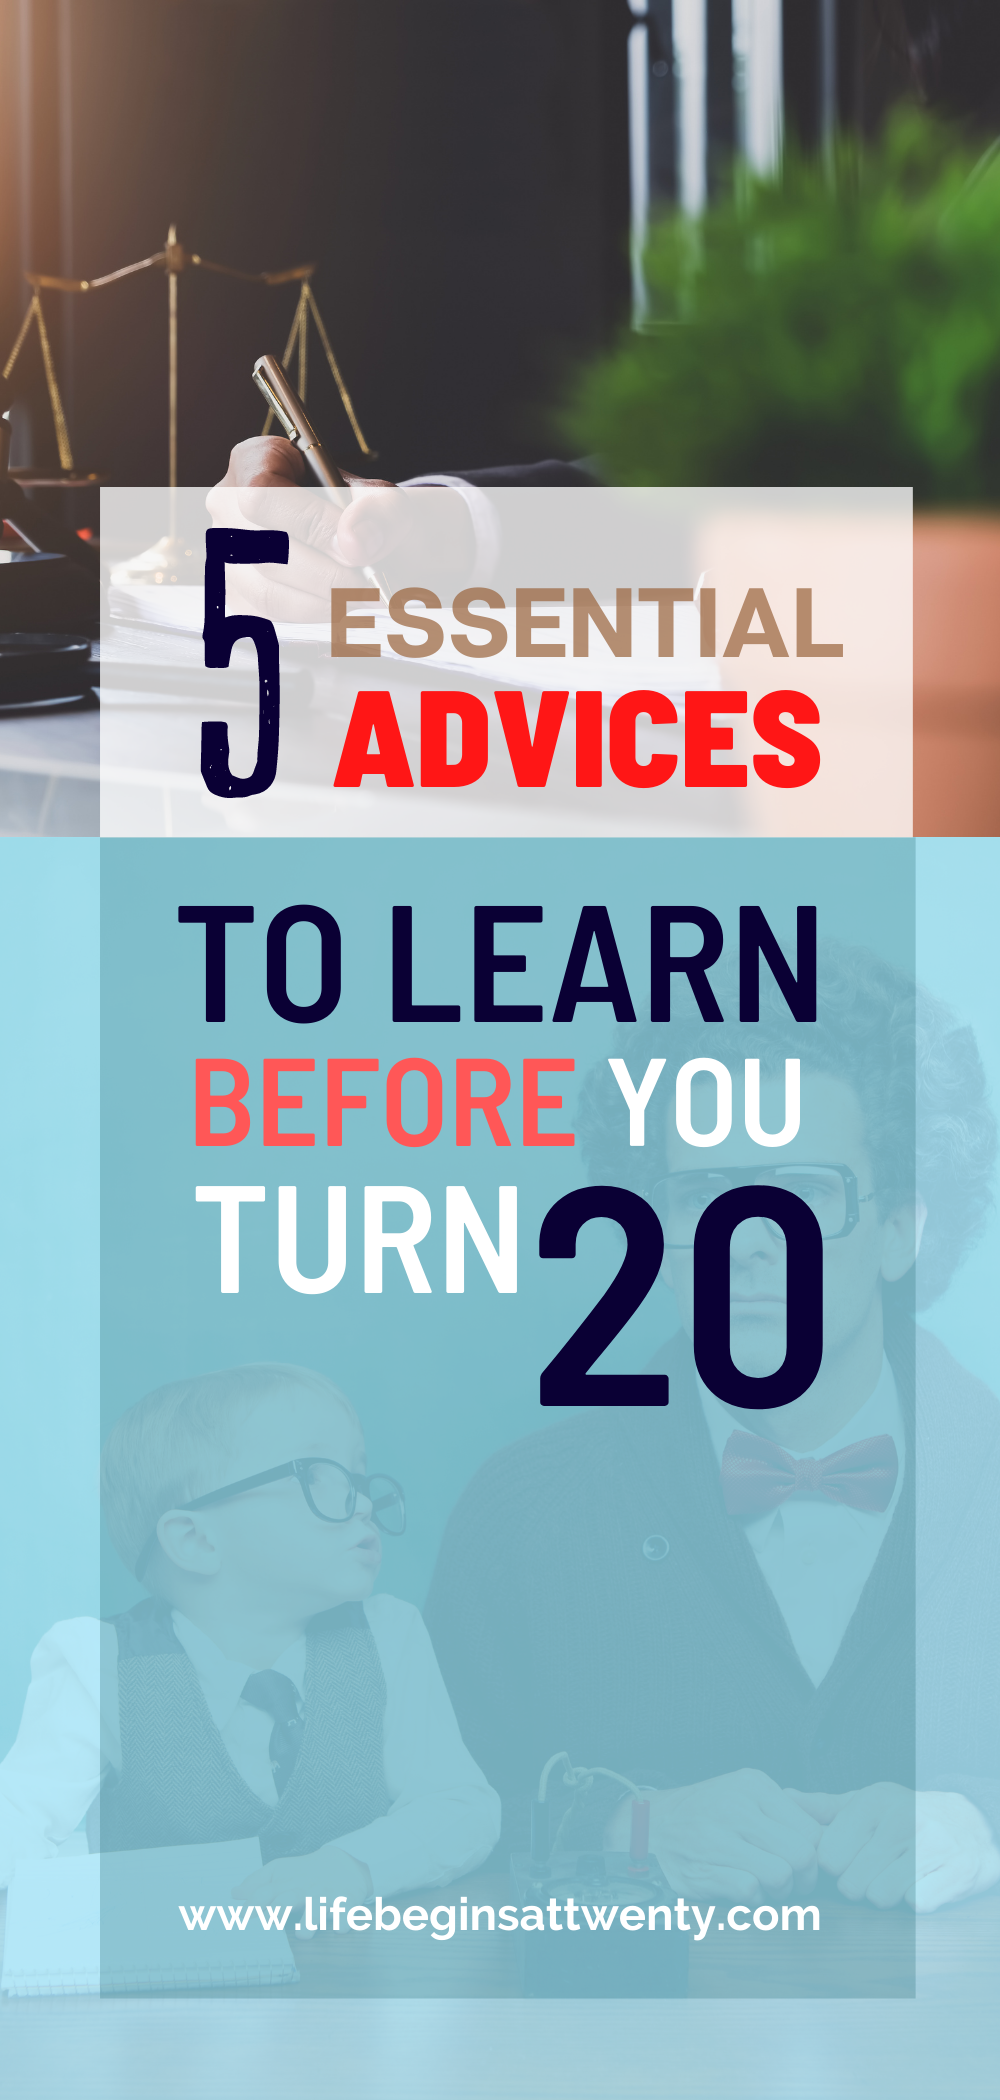 5 words of wisdom to learn before you turn 20